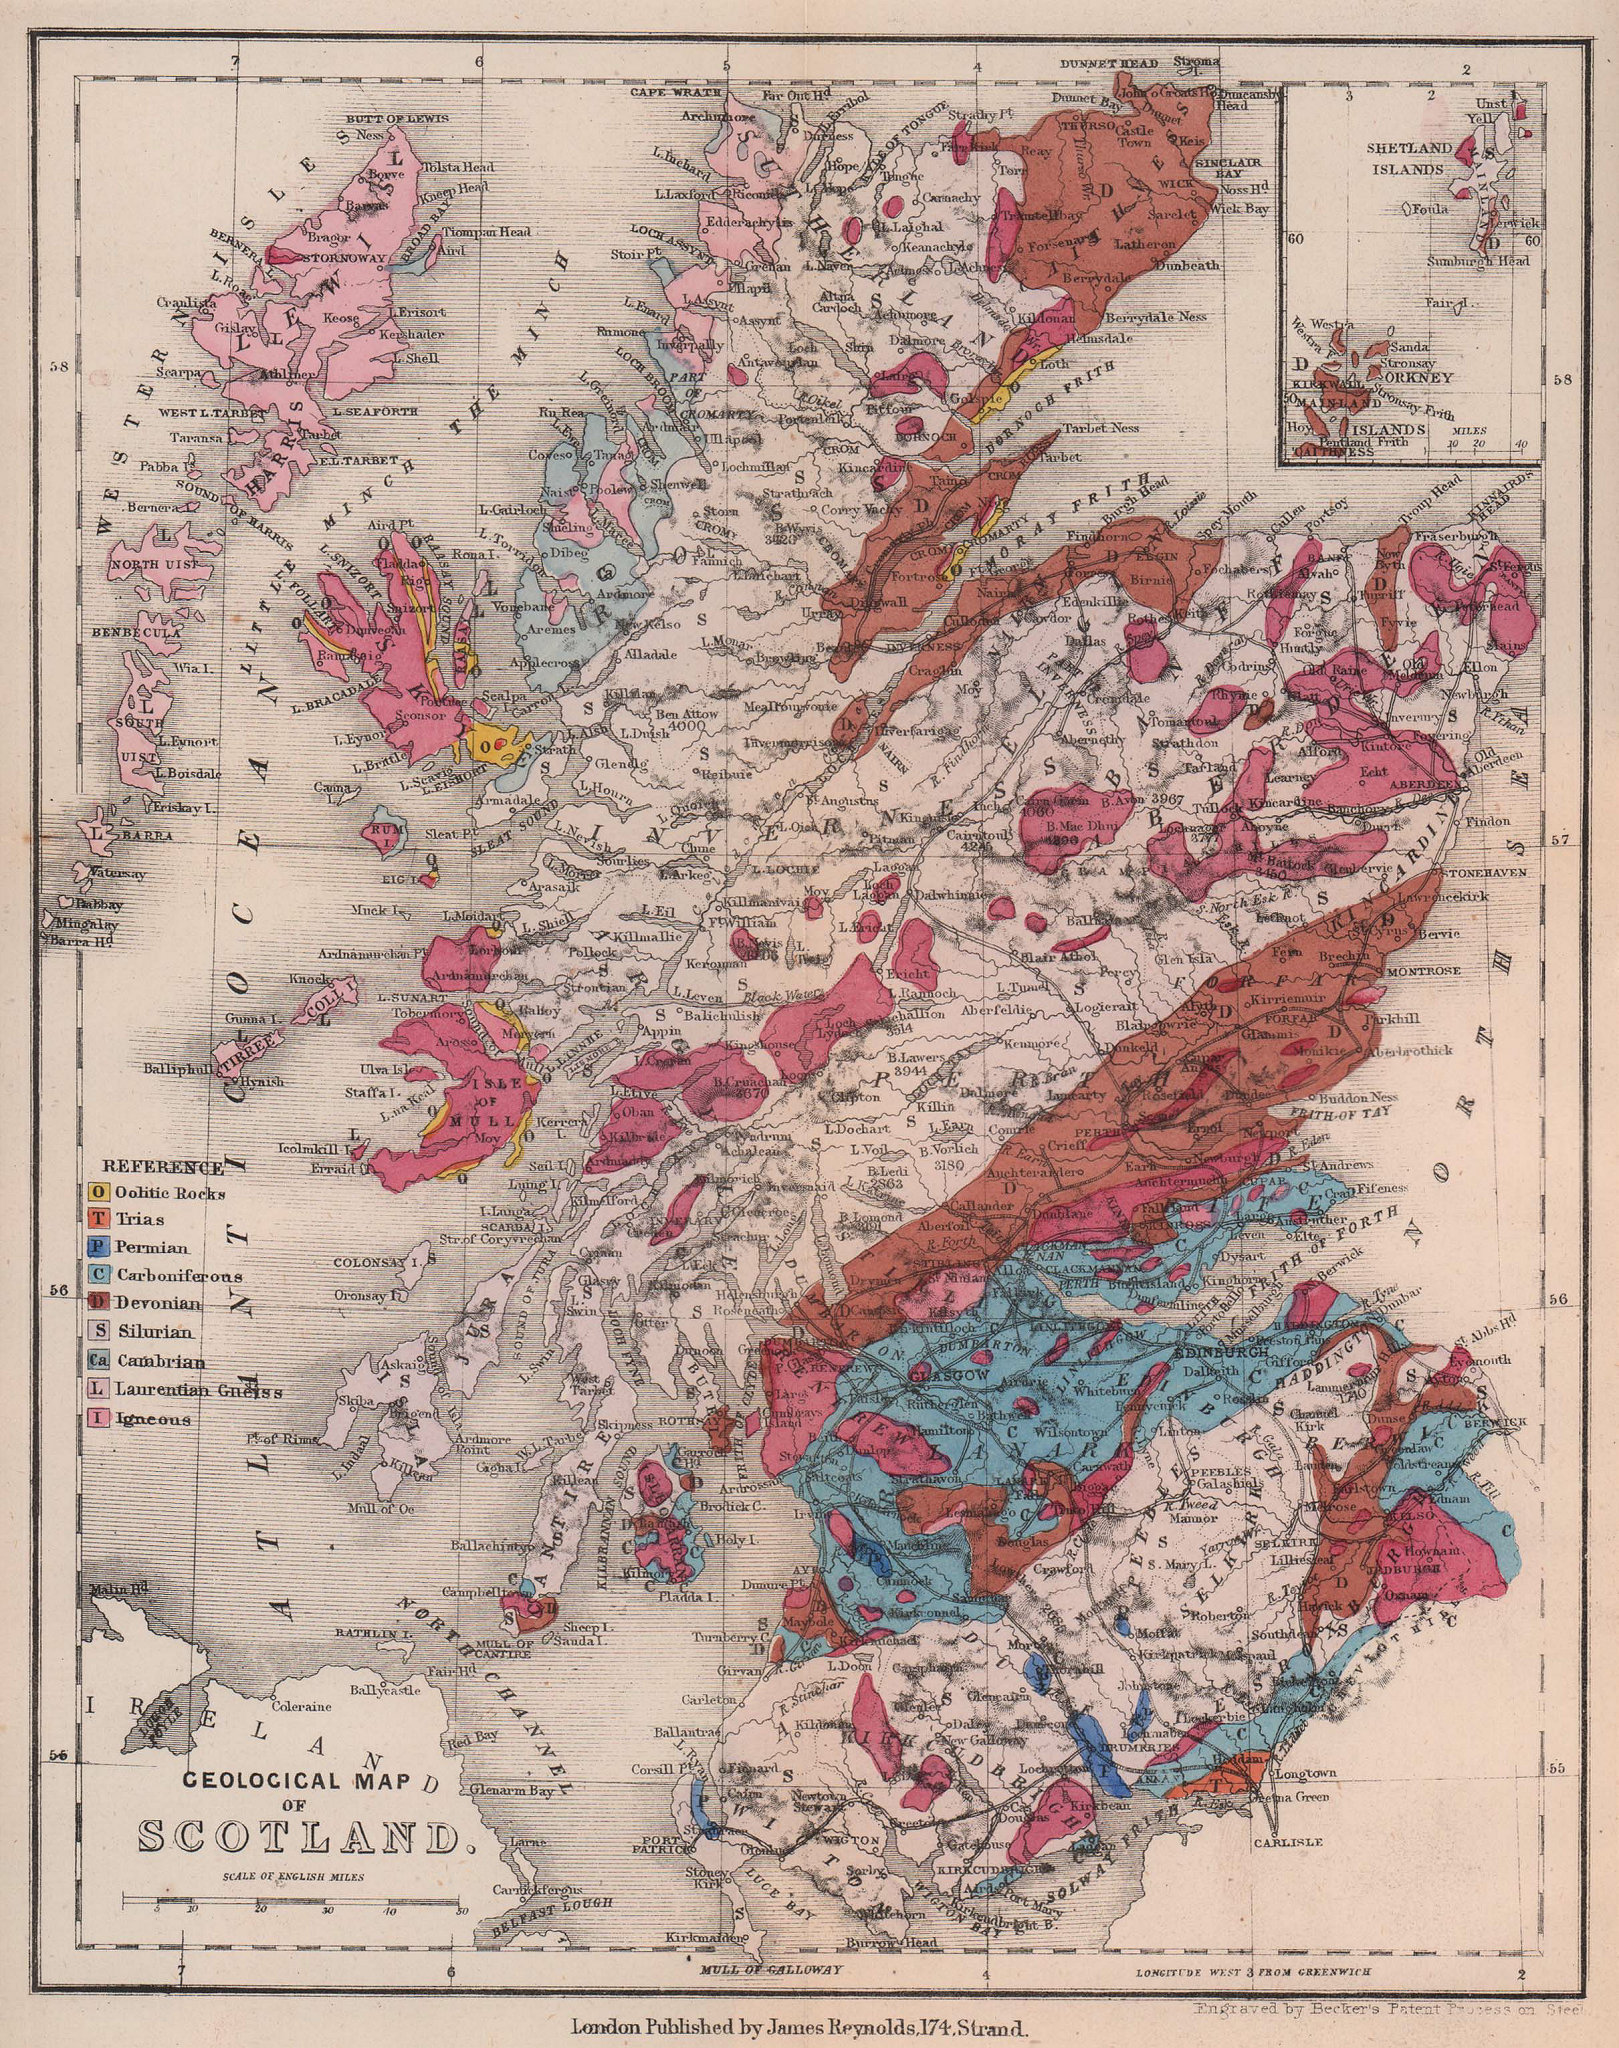 Antique geological map of Scotland by James Reynolds 1864